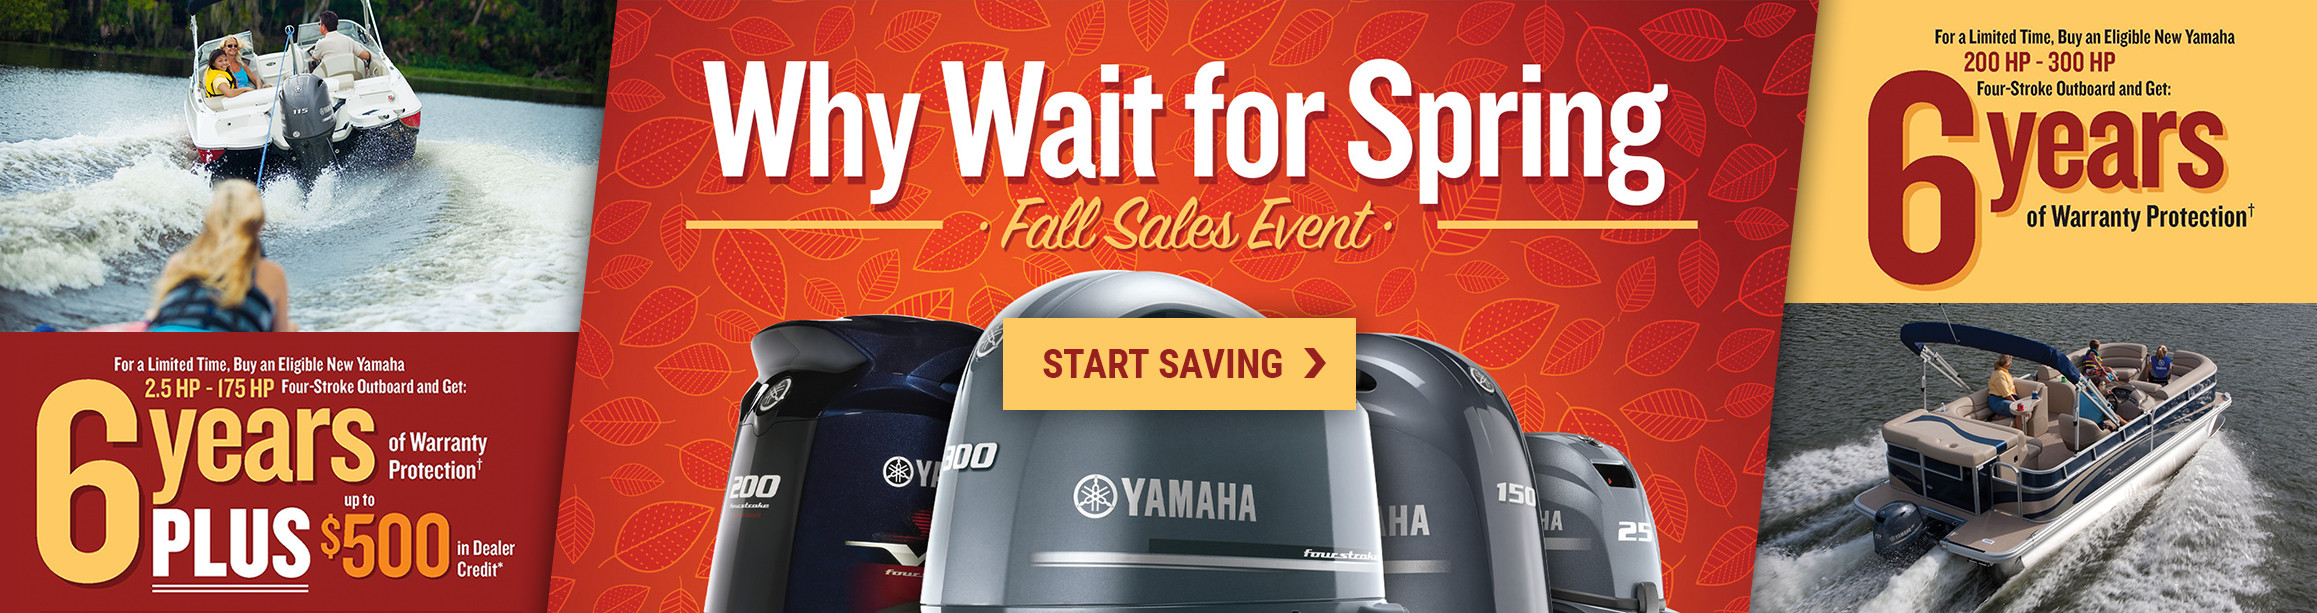 yamaha-engine-fall-sale-004